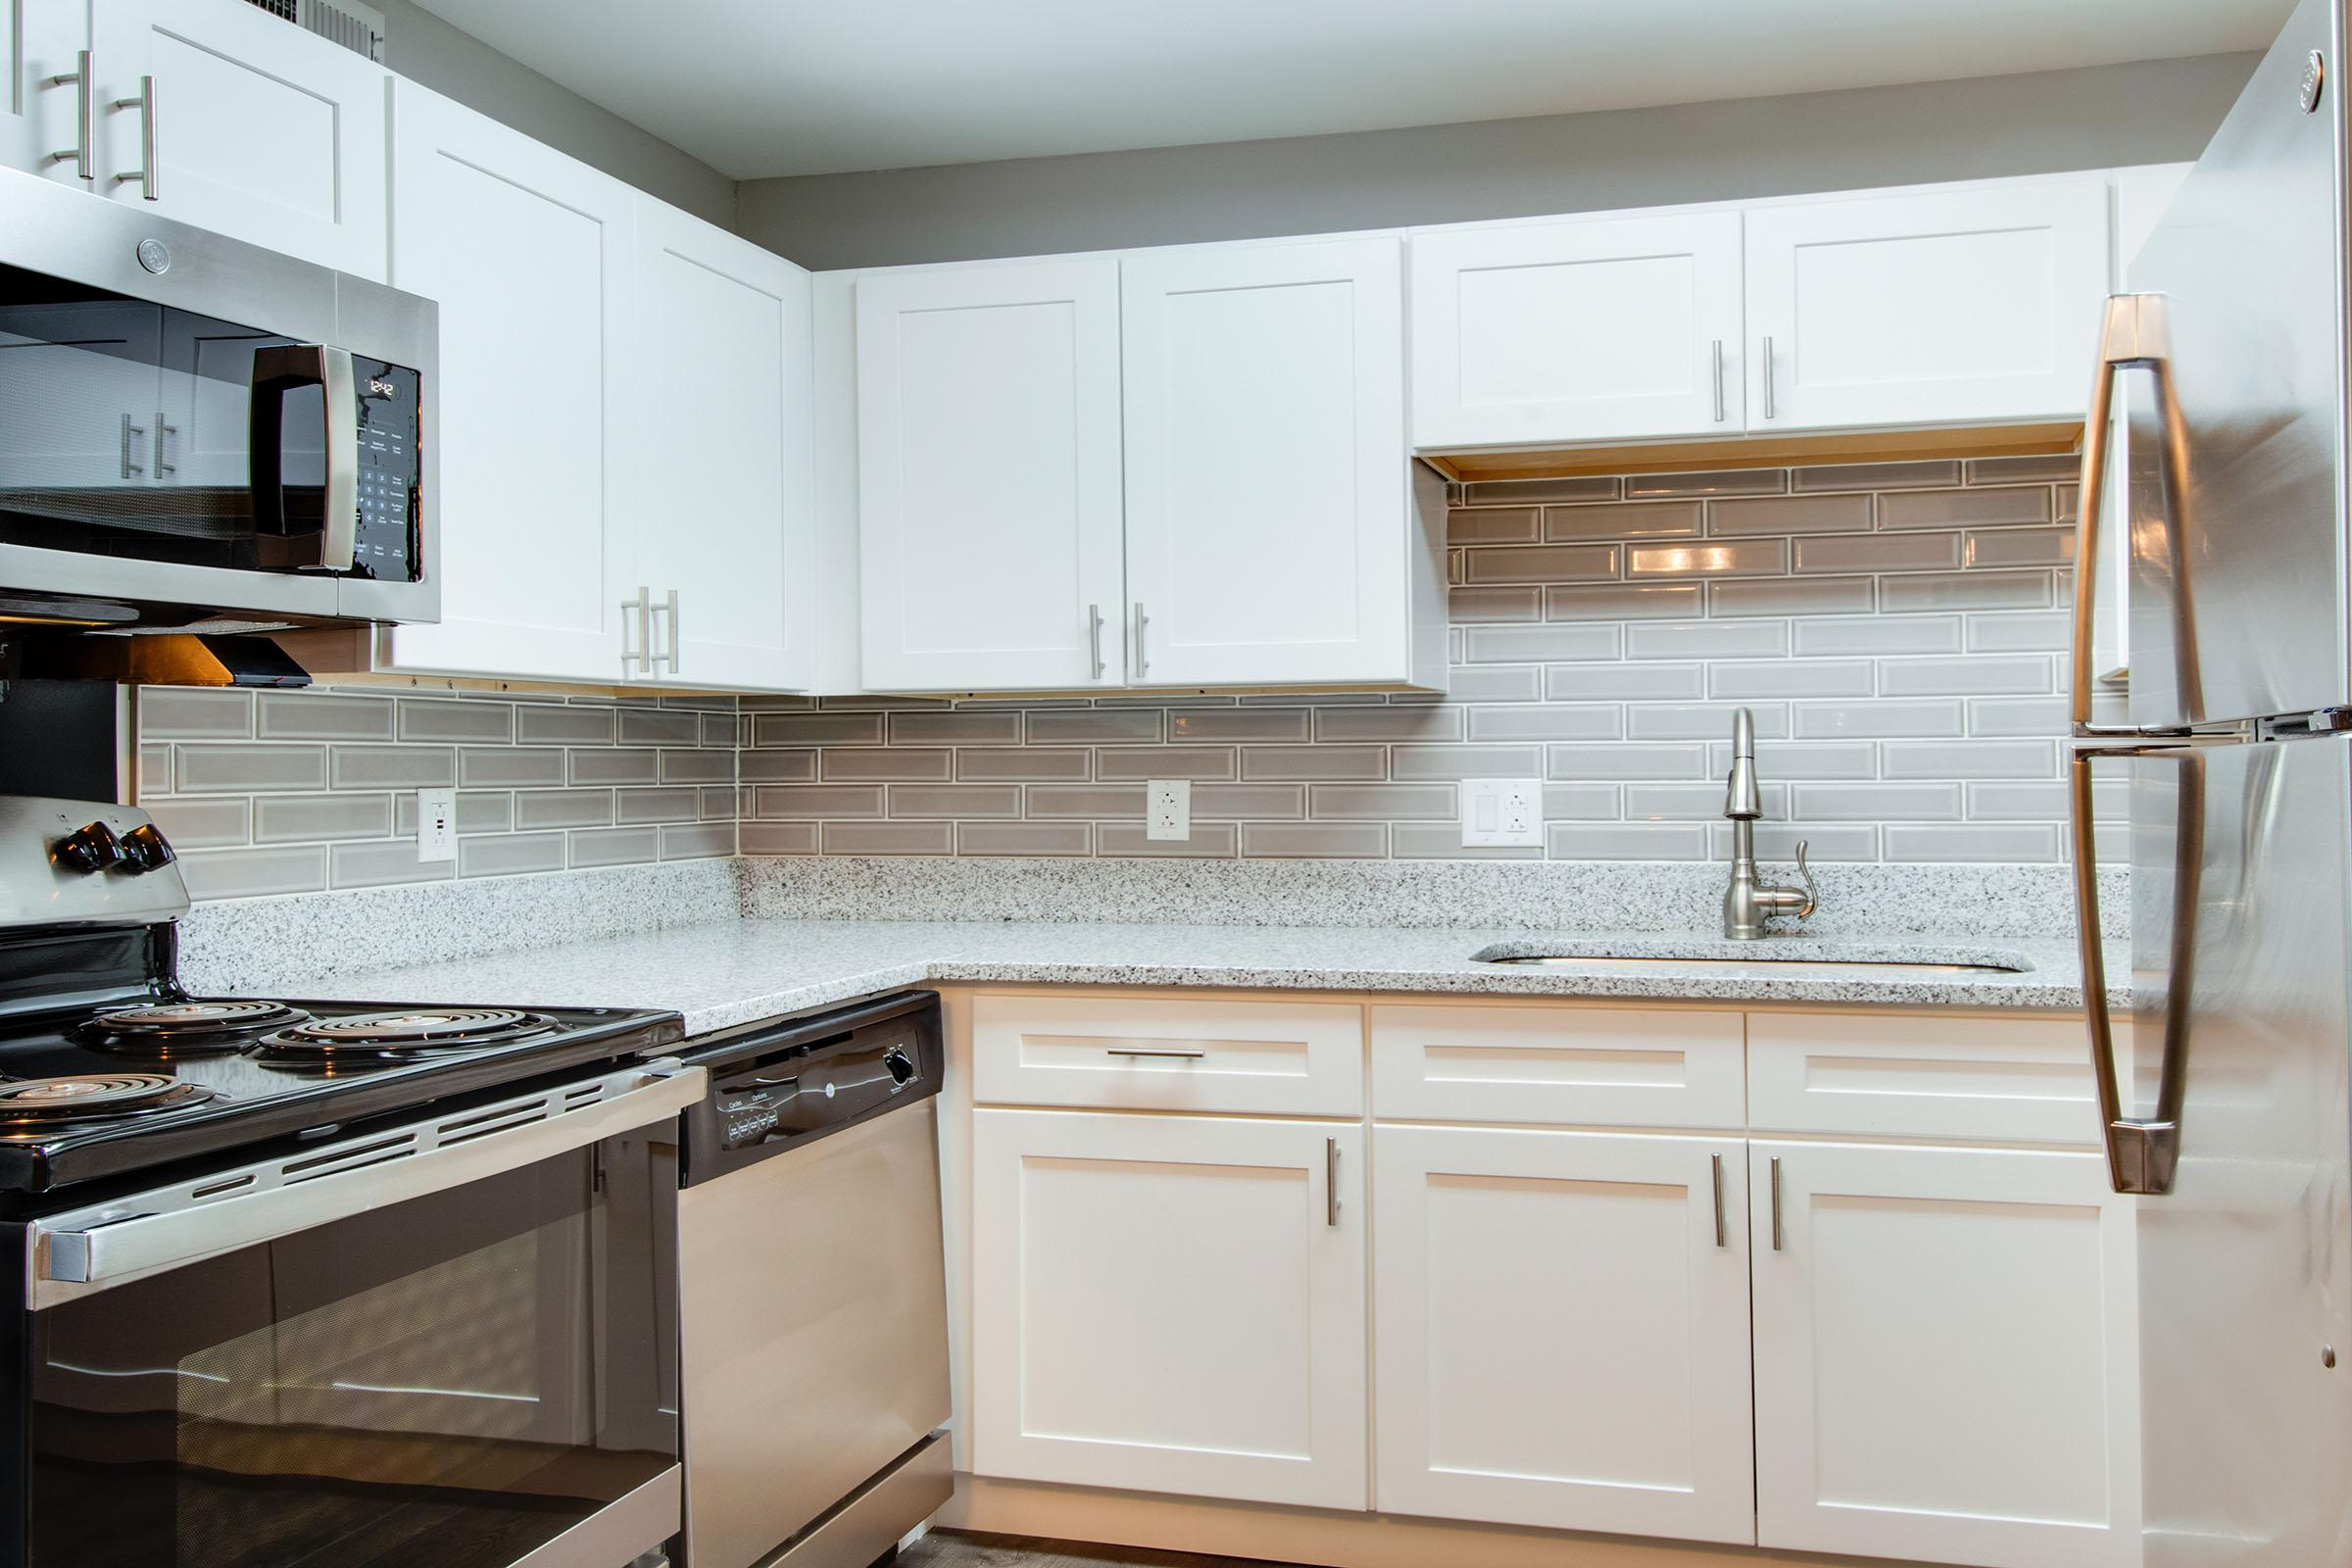 Updated kitchen with white cabinets